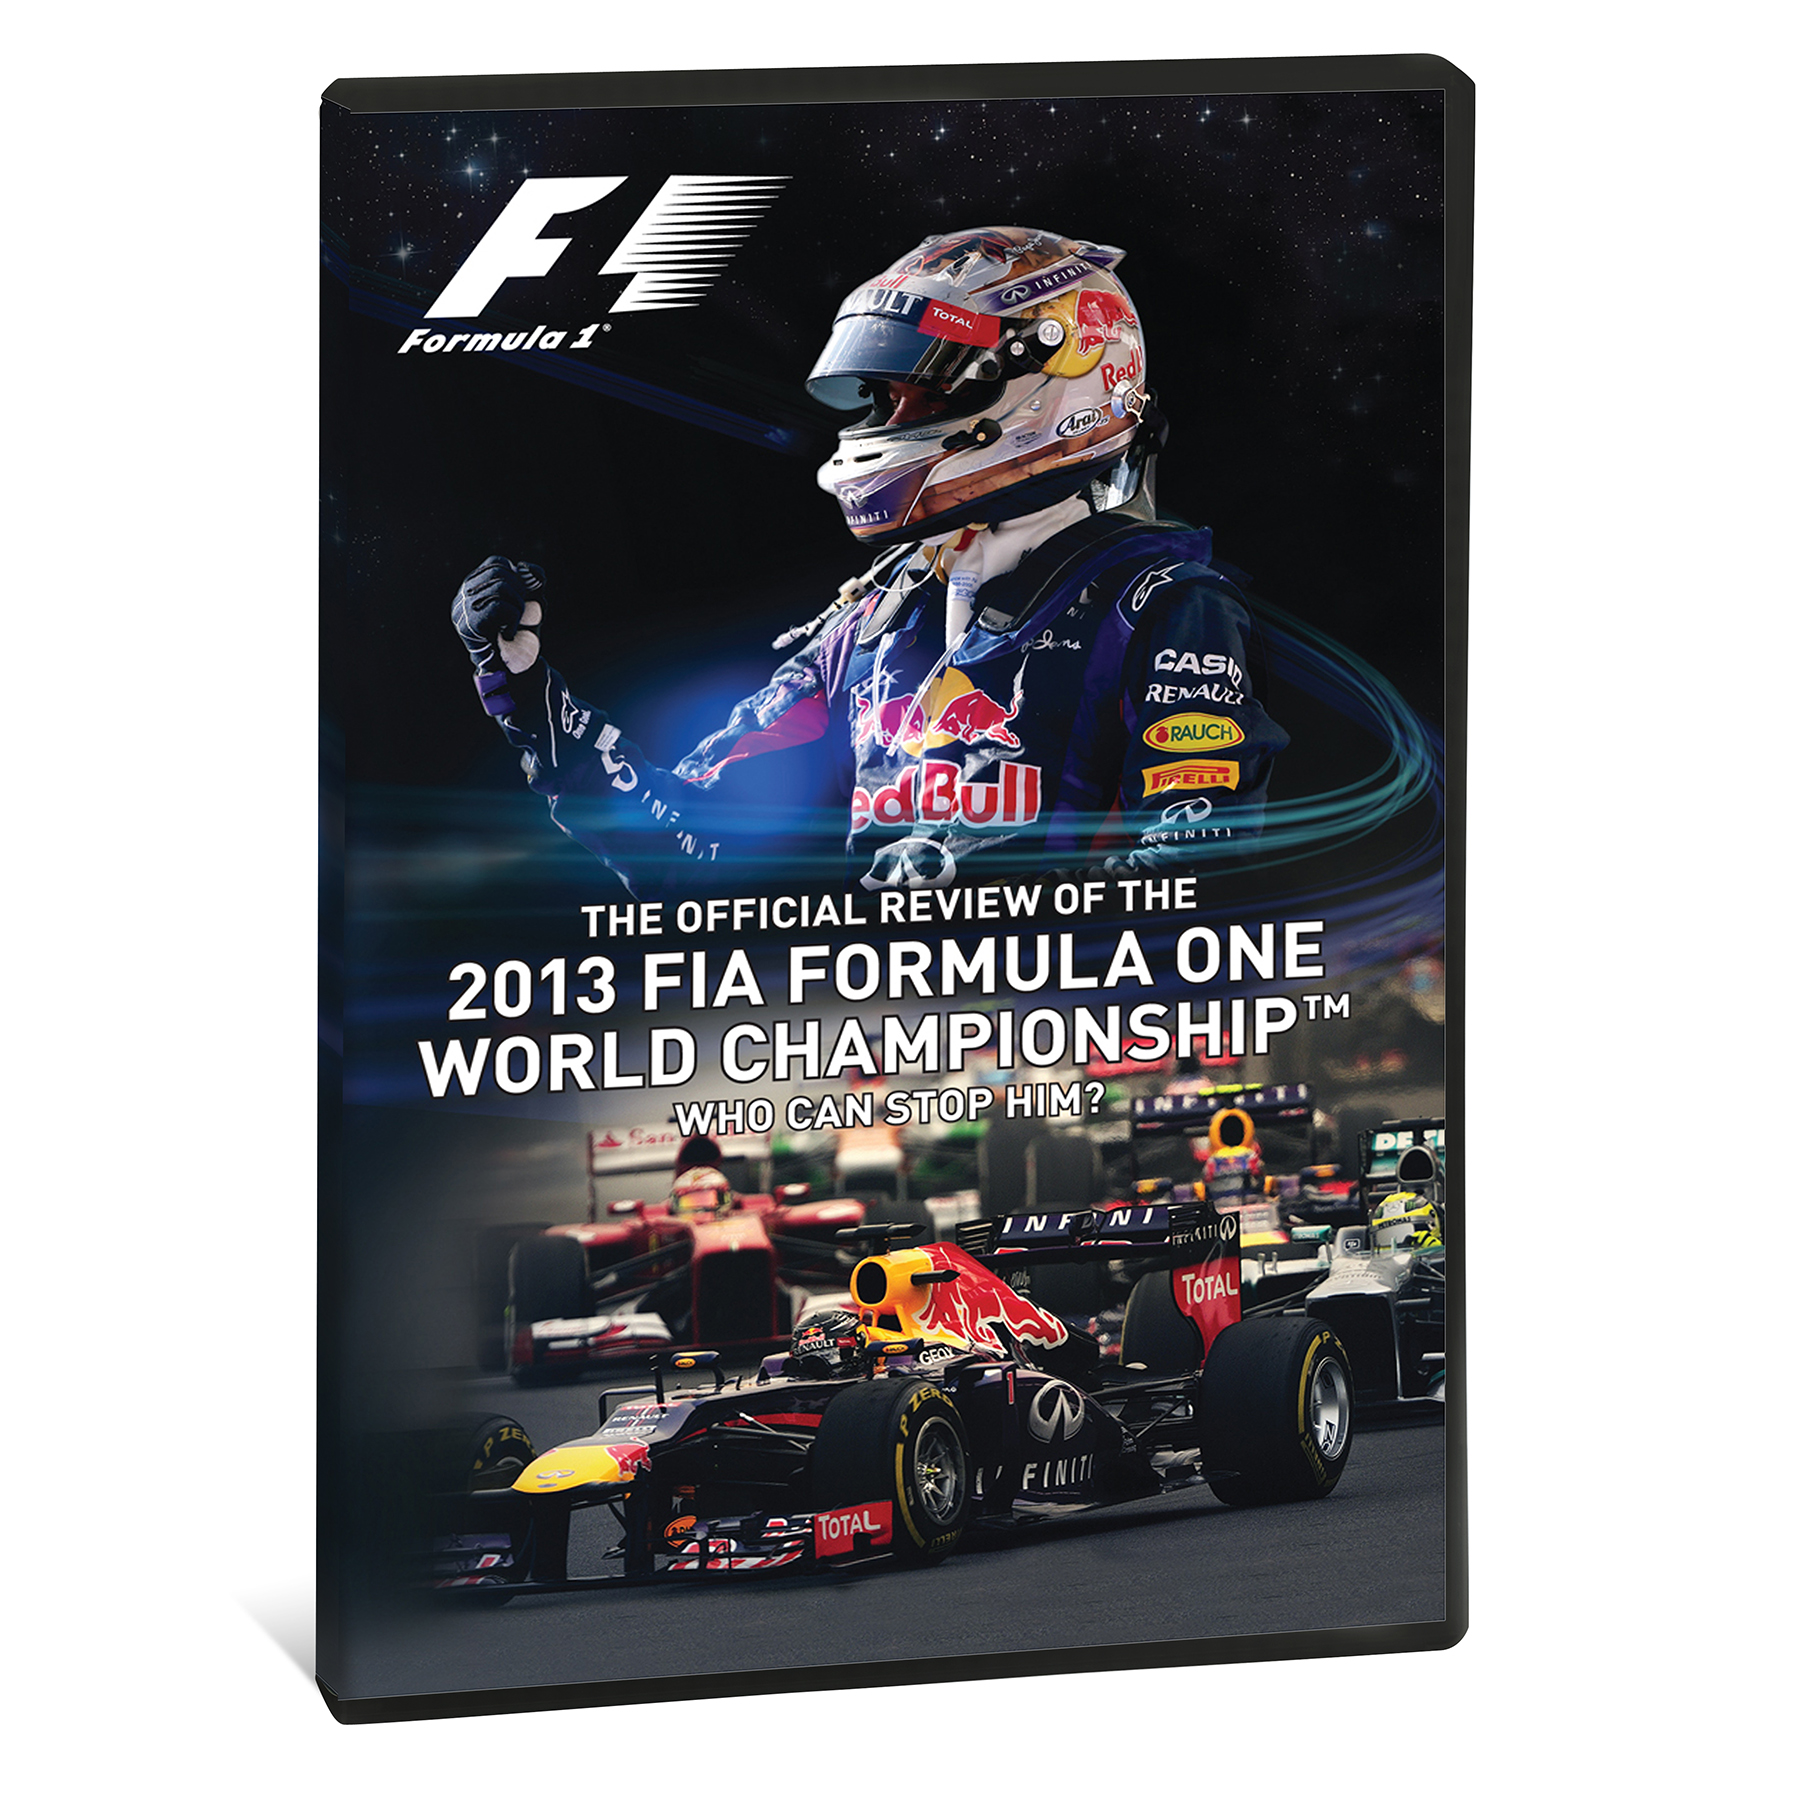 Formula One 2013 The Official Review DVD